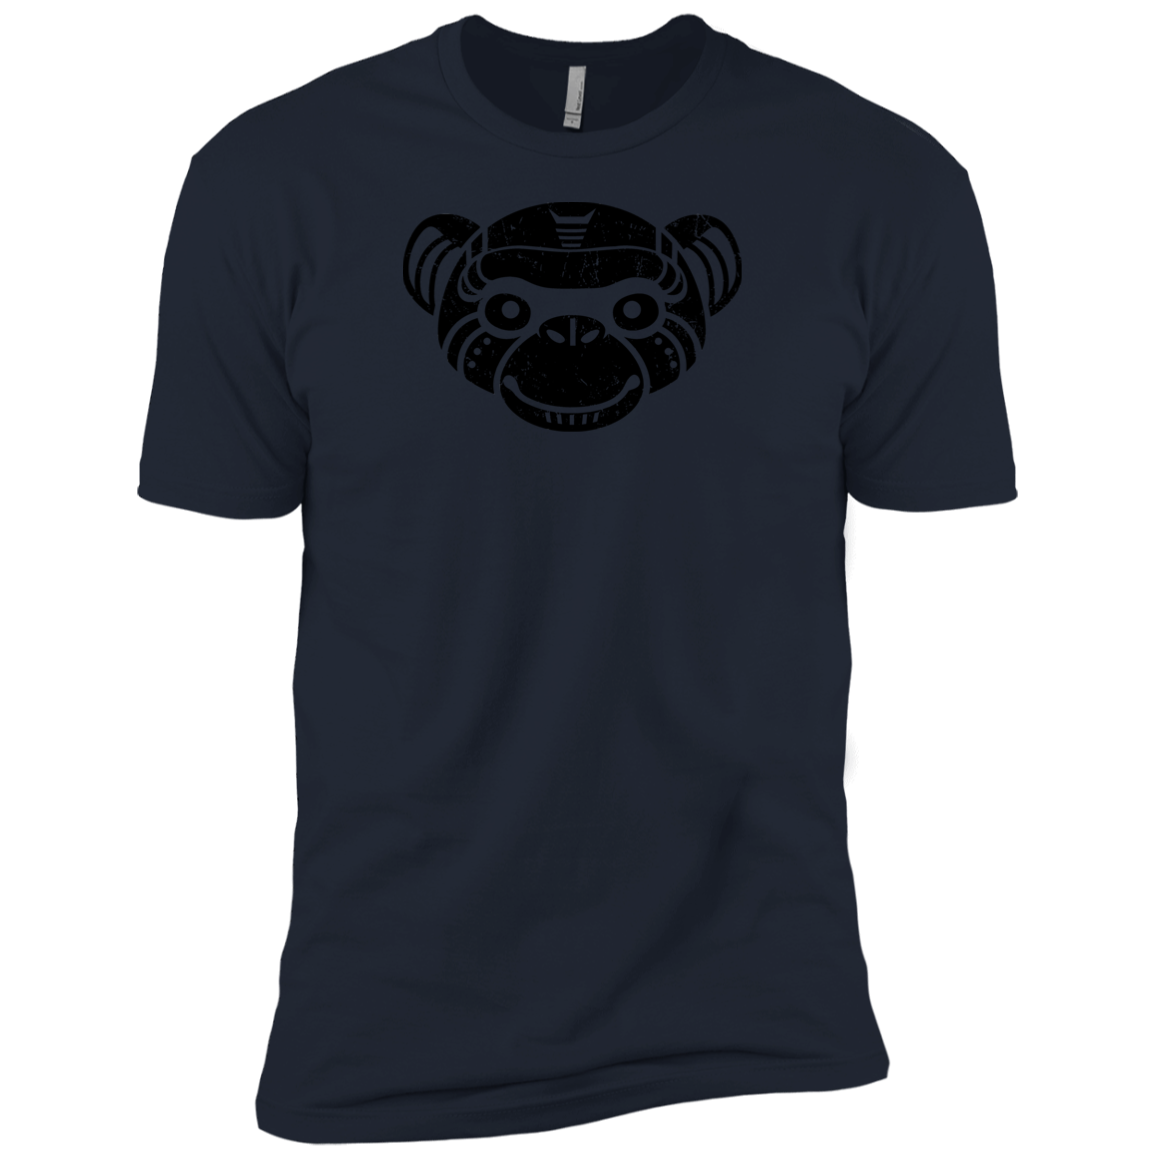 Black Distressed Emblem (Monkey/Fix) - Dark Corps